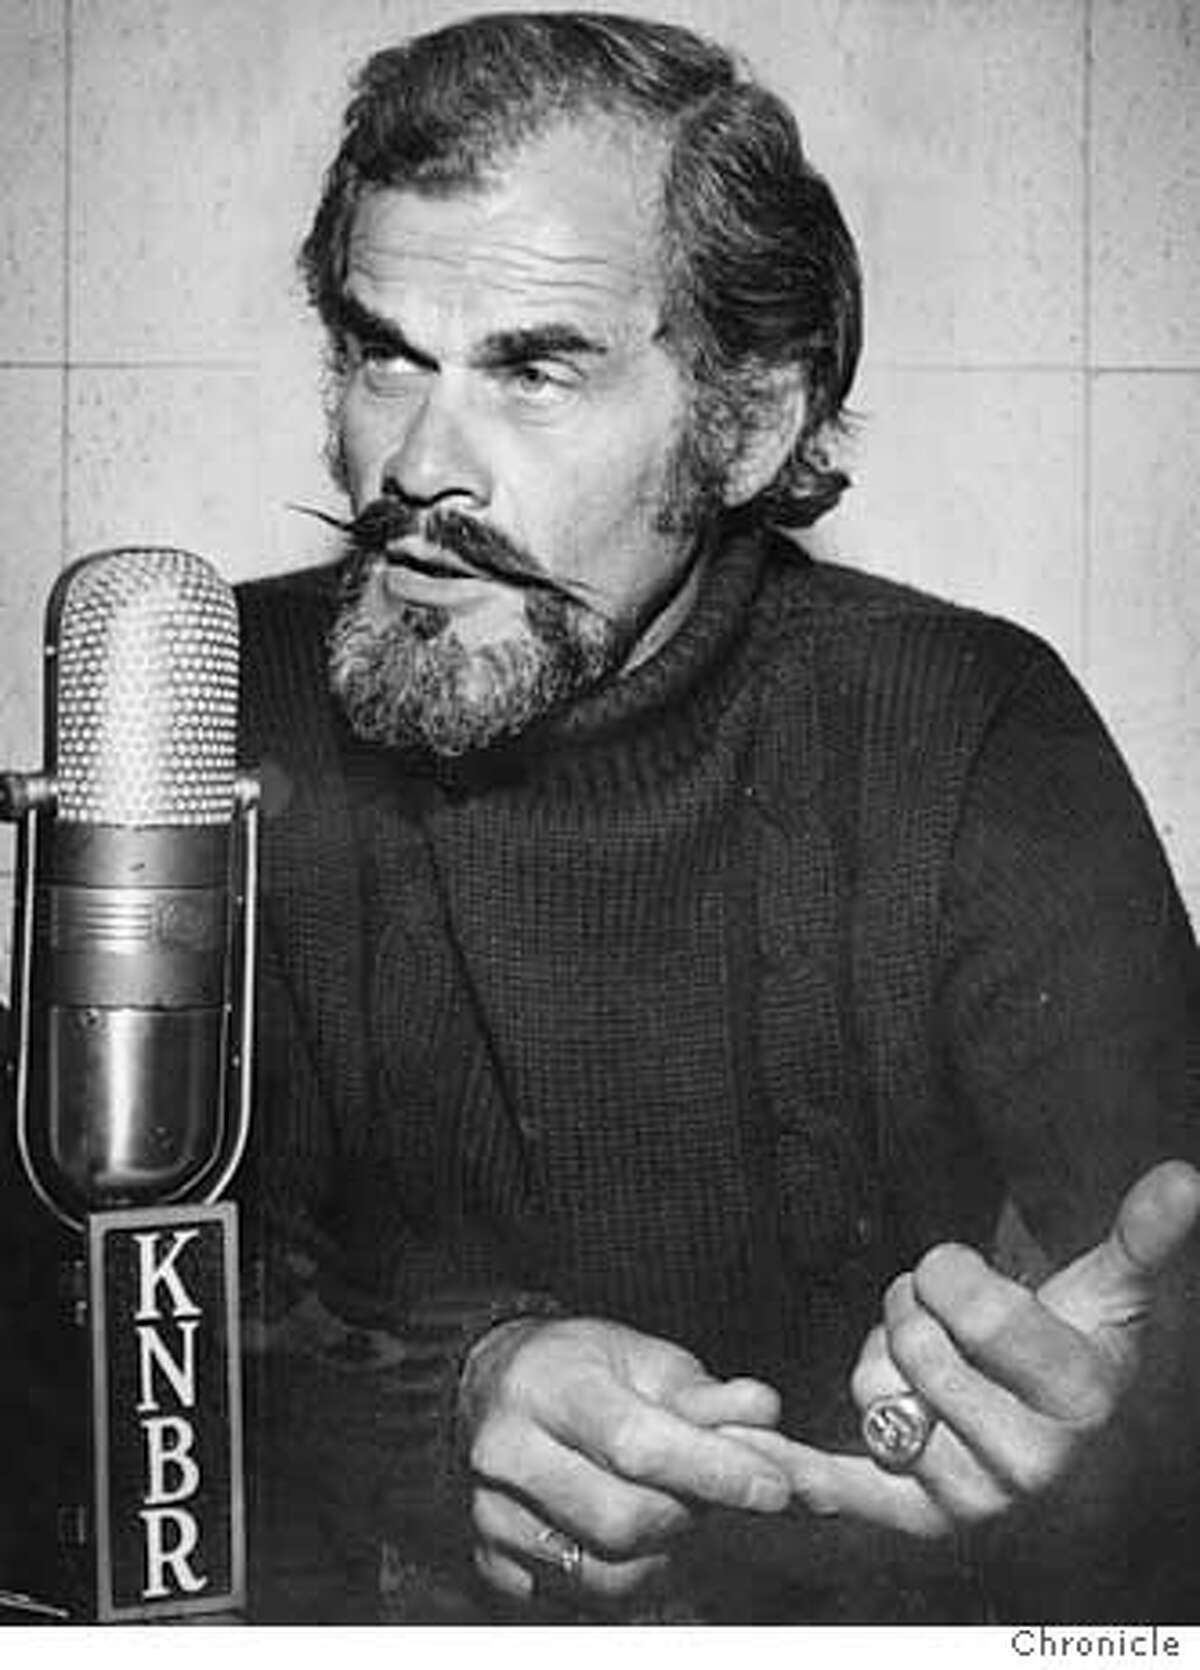 Bay Area Sportscaster Bill King died early Tuesday, Oct. 18, 2005, from complications following hip surgery. He was 78.